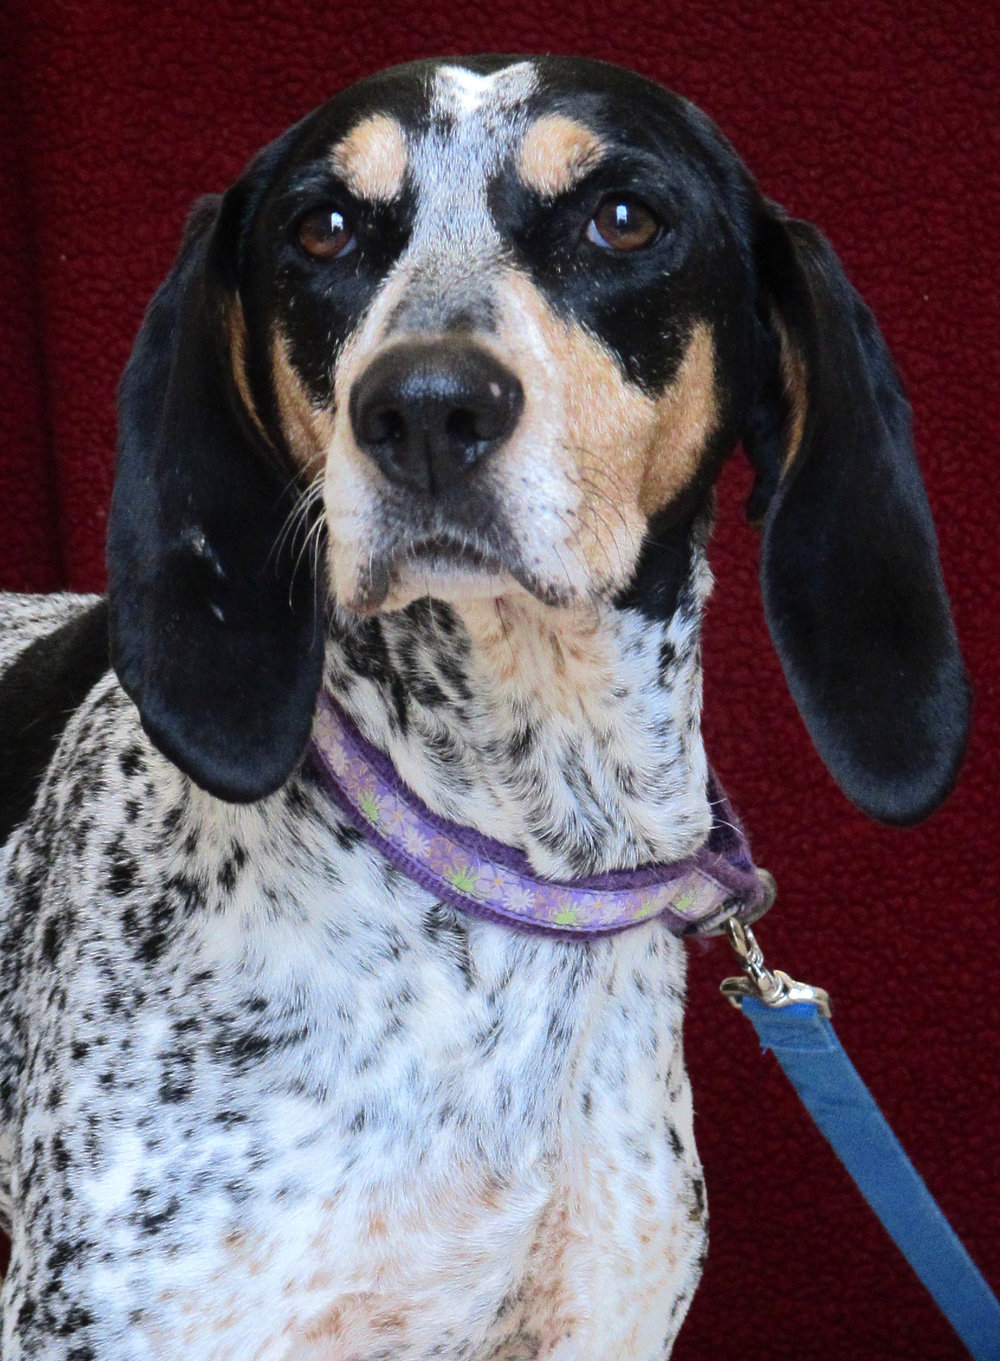 Gladys is a sweet 8-year-old Bluetick Coonhound who has been at HAWS since the end of August. She is looking for a family where she would be your one and only pet! However, she seems to really enjoy being around children and is gentle and very appropriate while on leash.